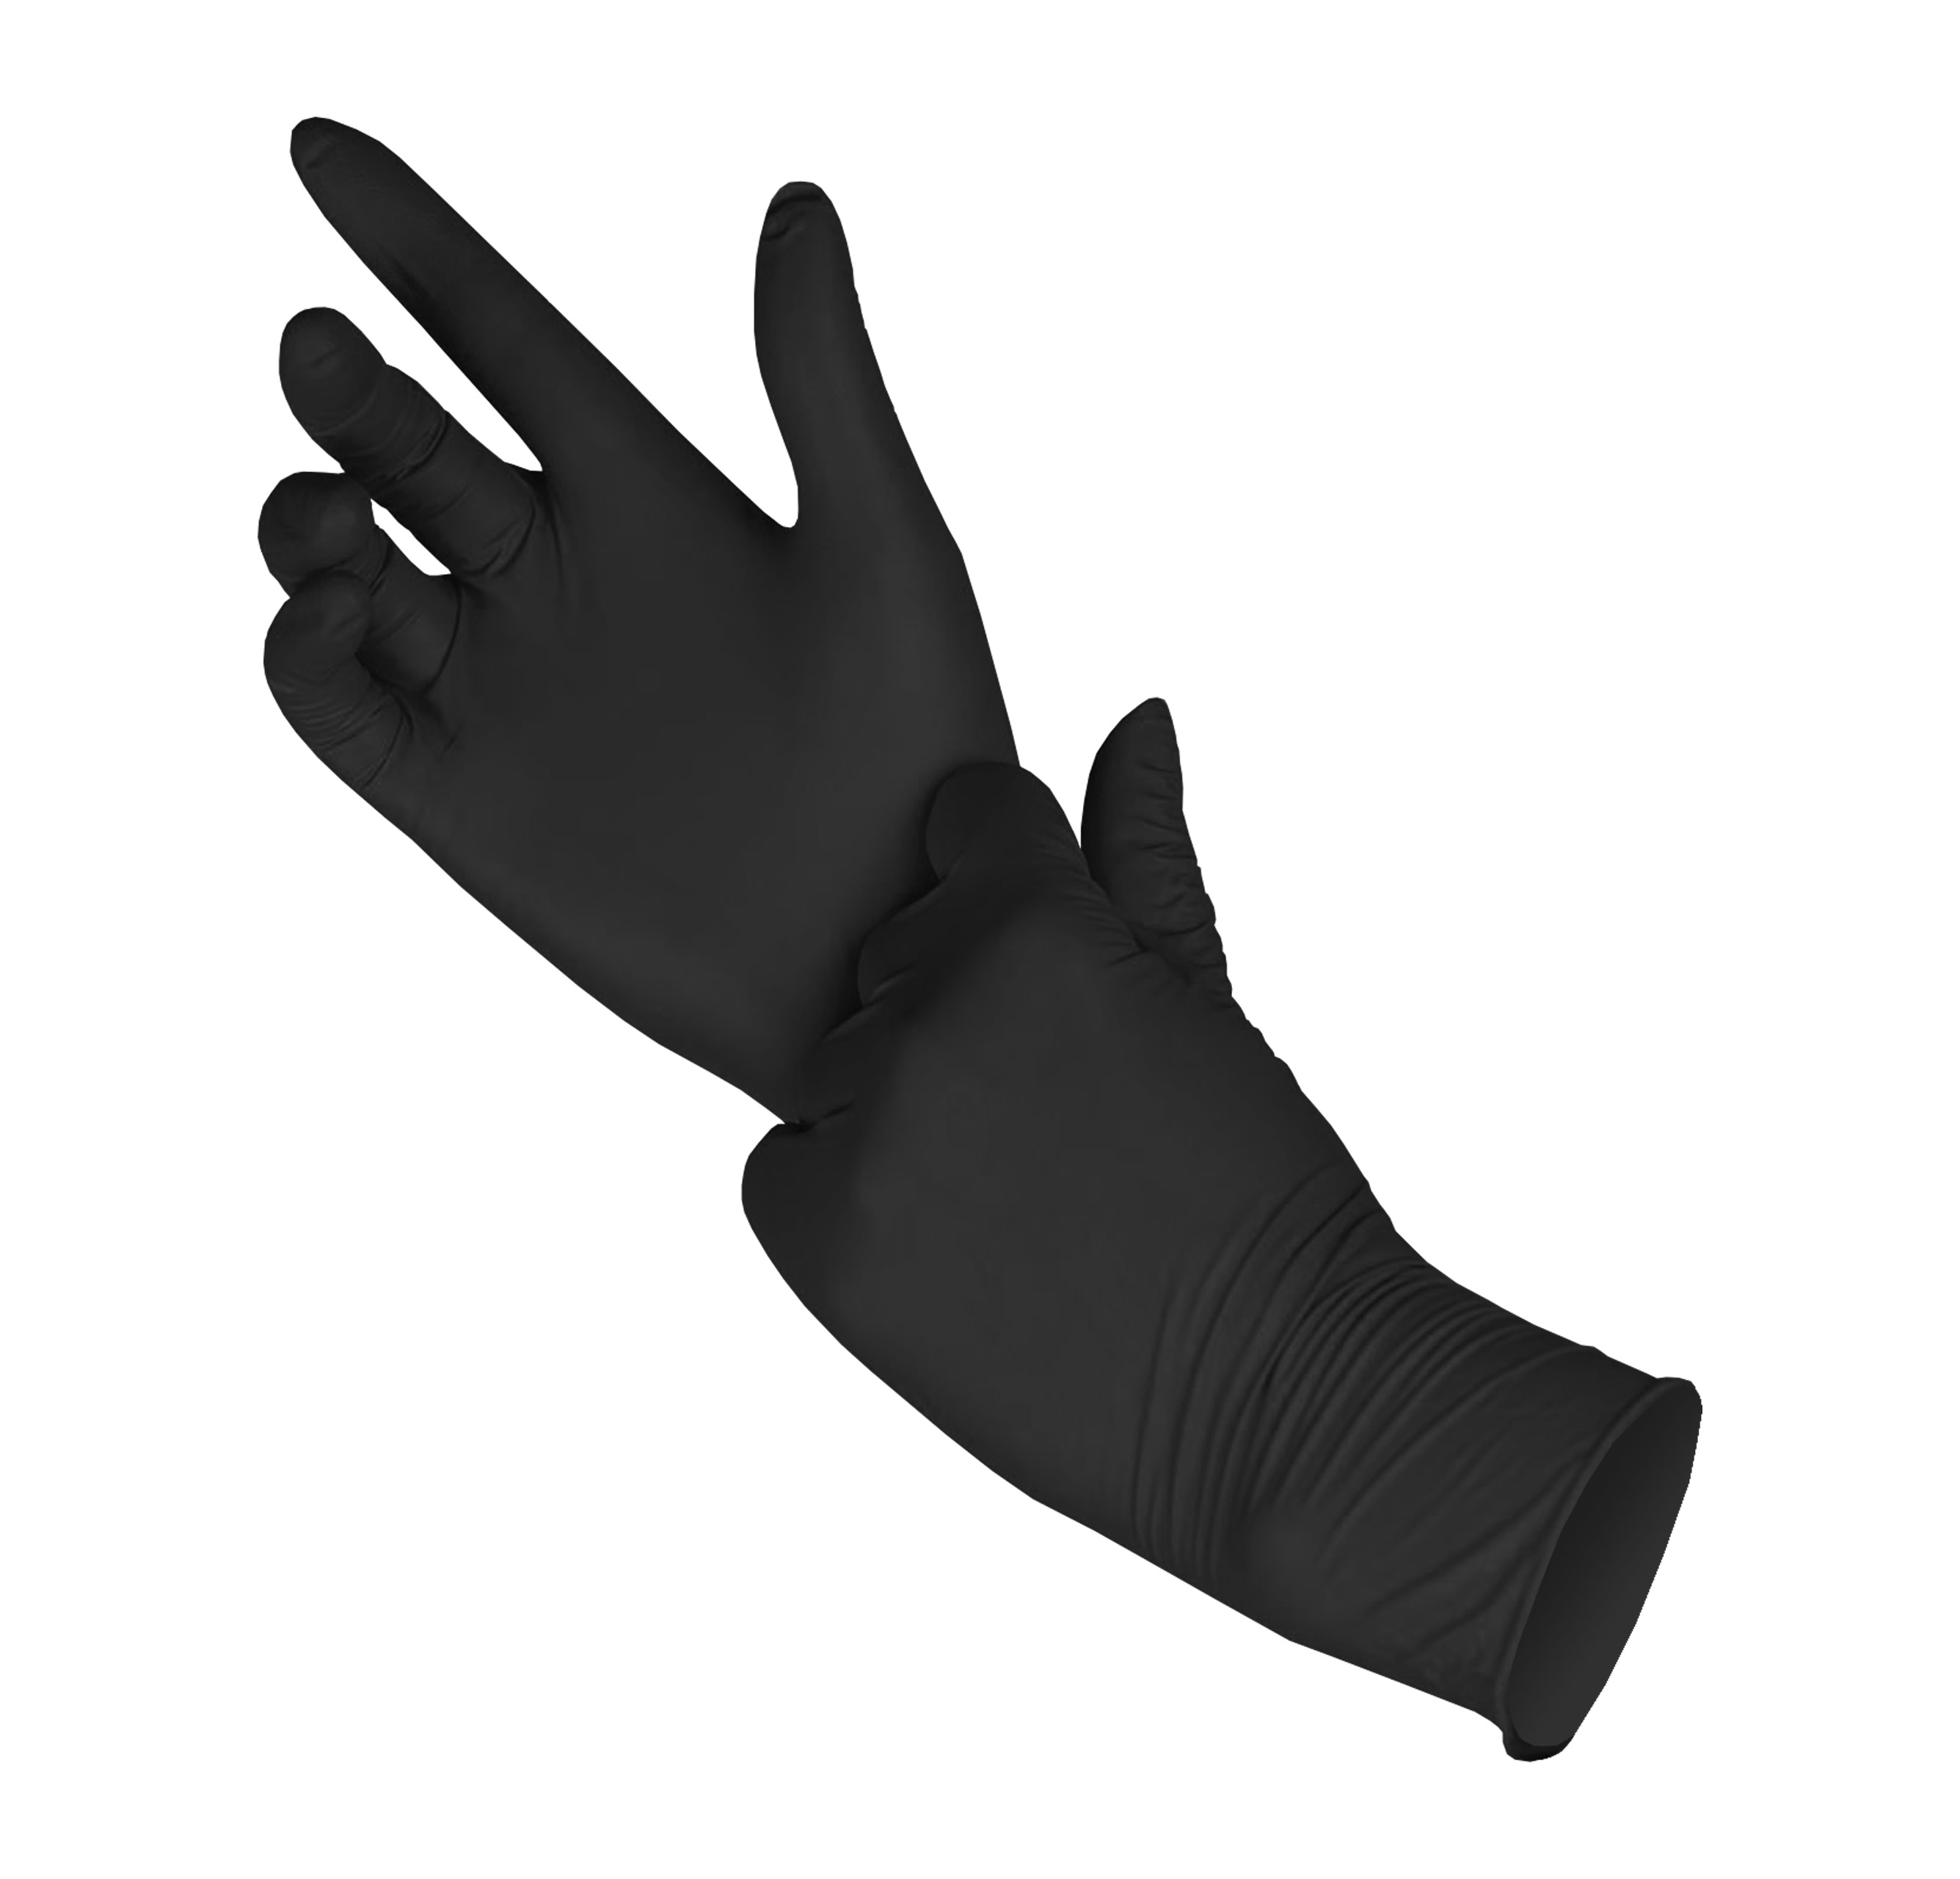 NITRILE DISPOSABLE GLOVE